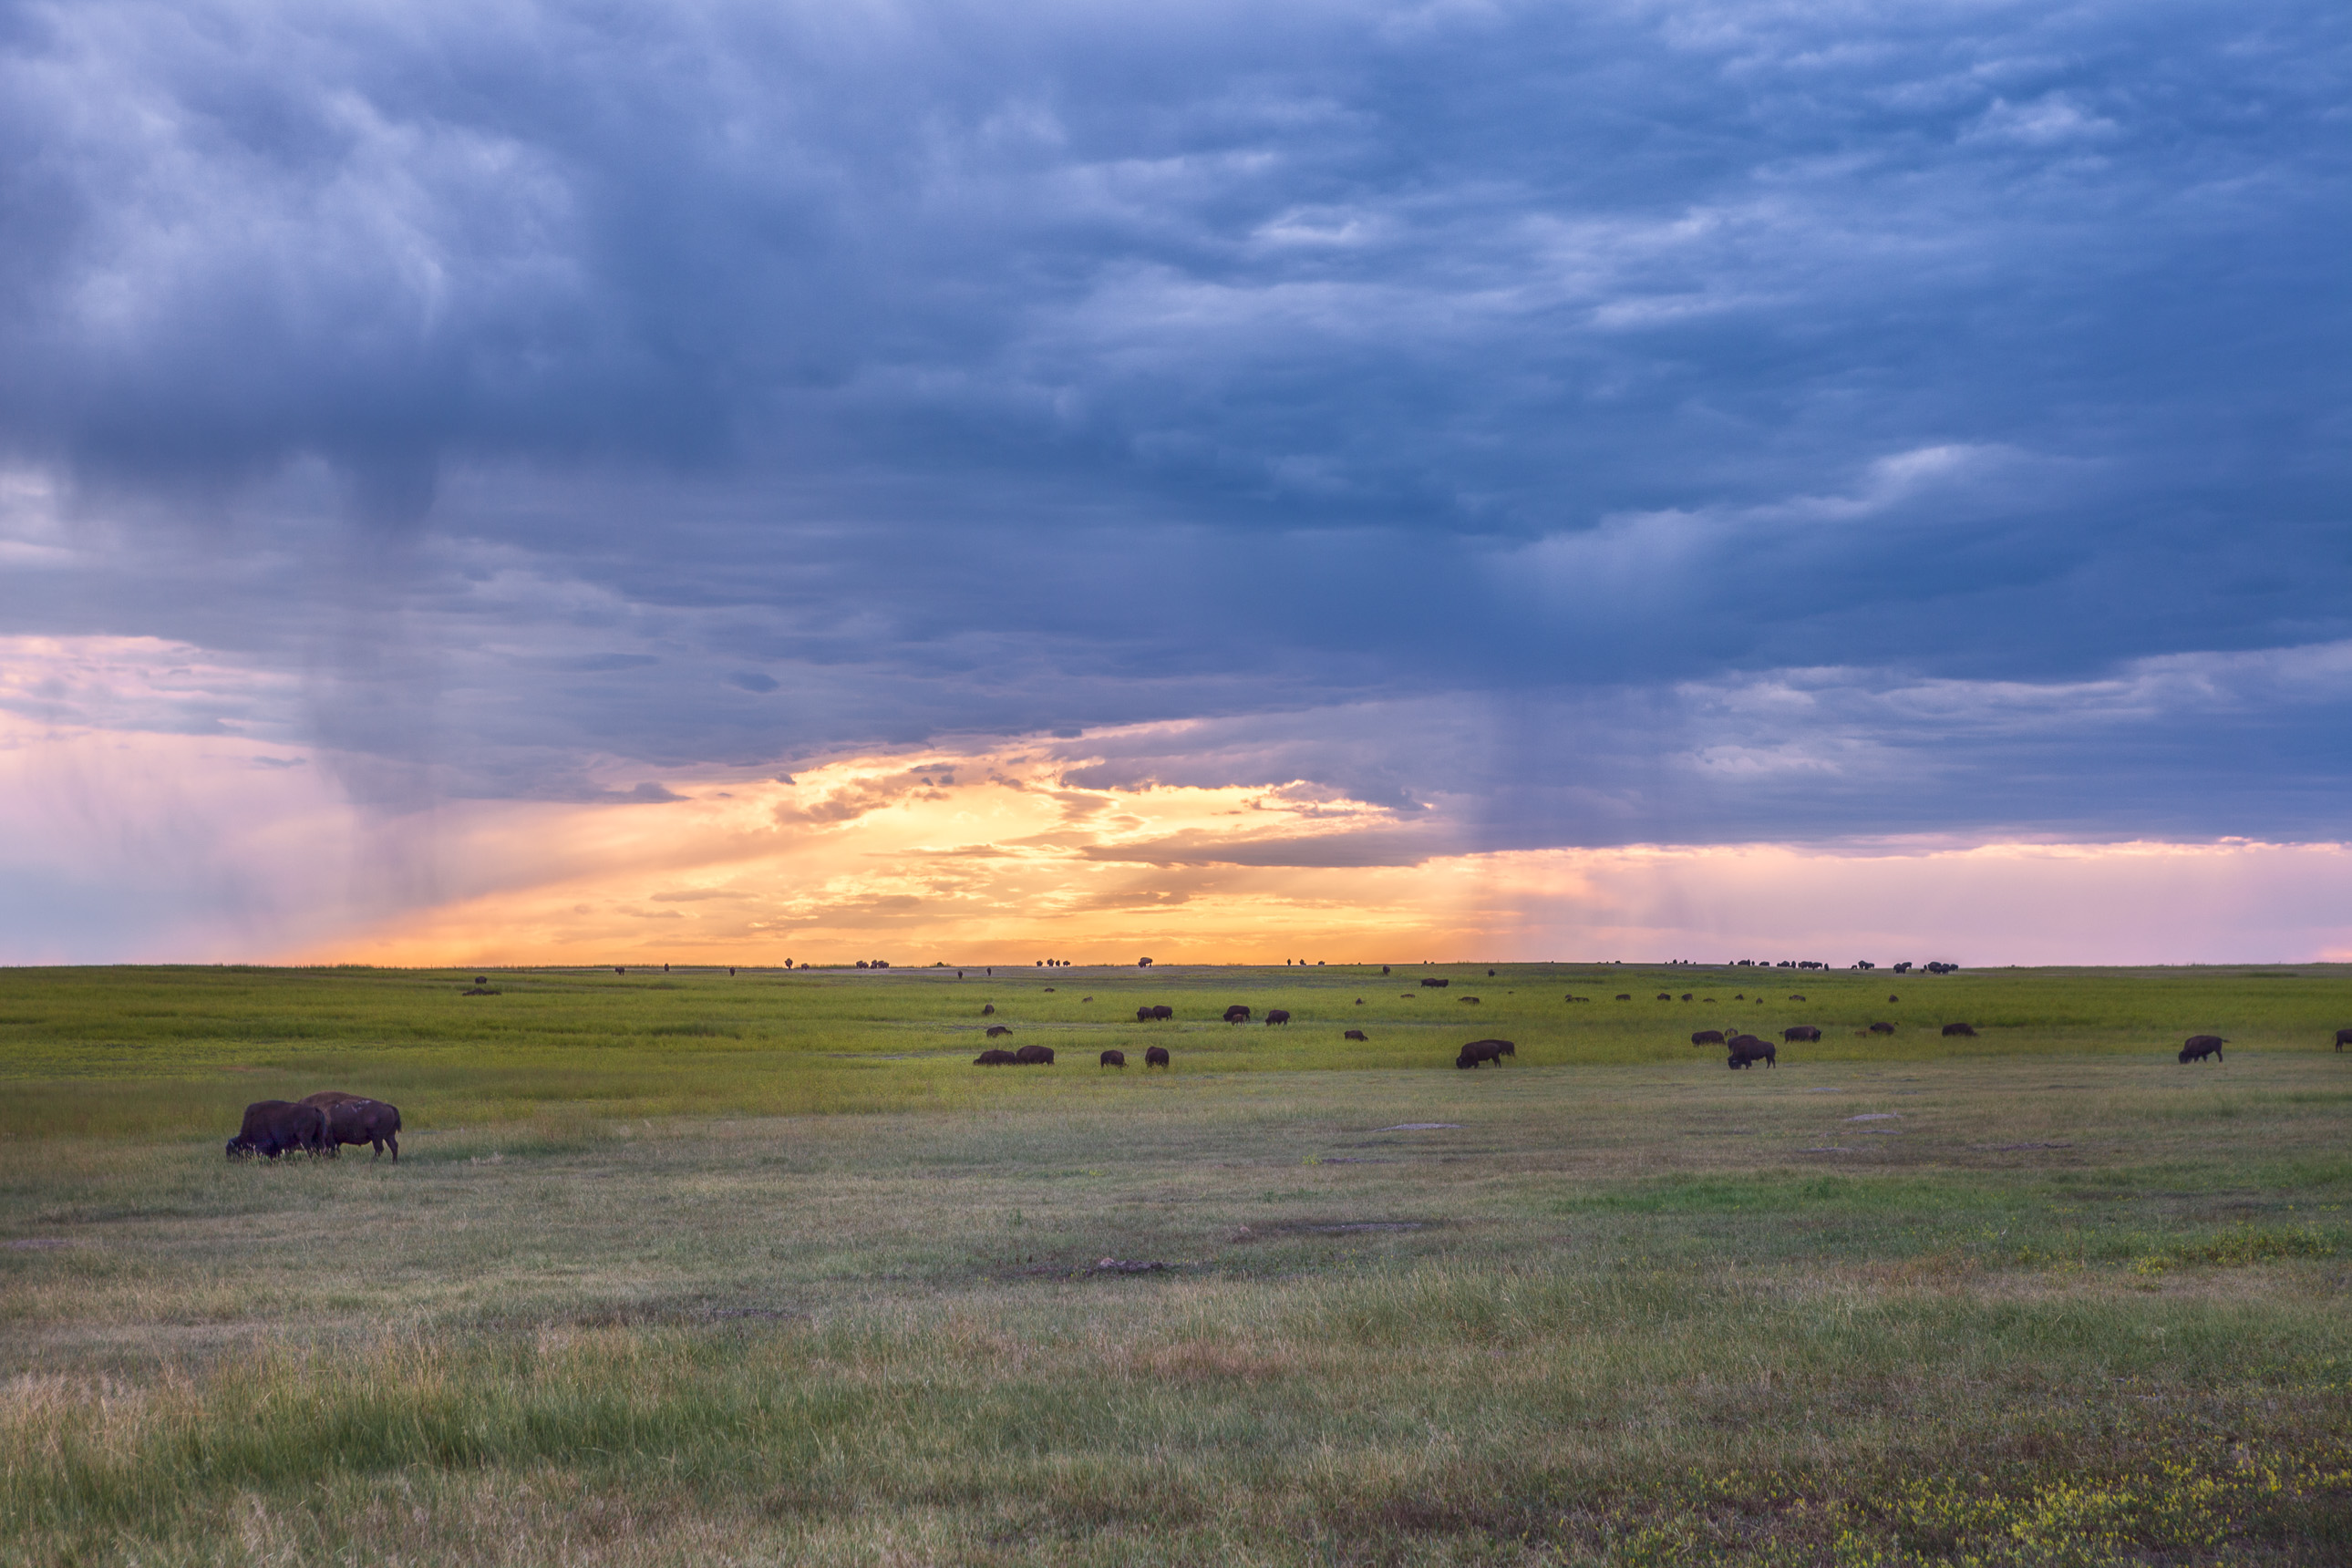 Bison herd at sunset in Badlands National Park